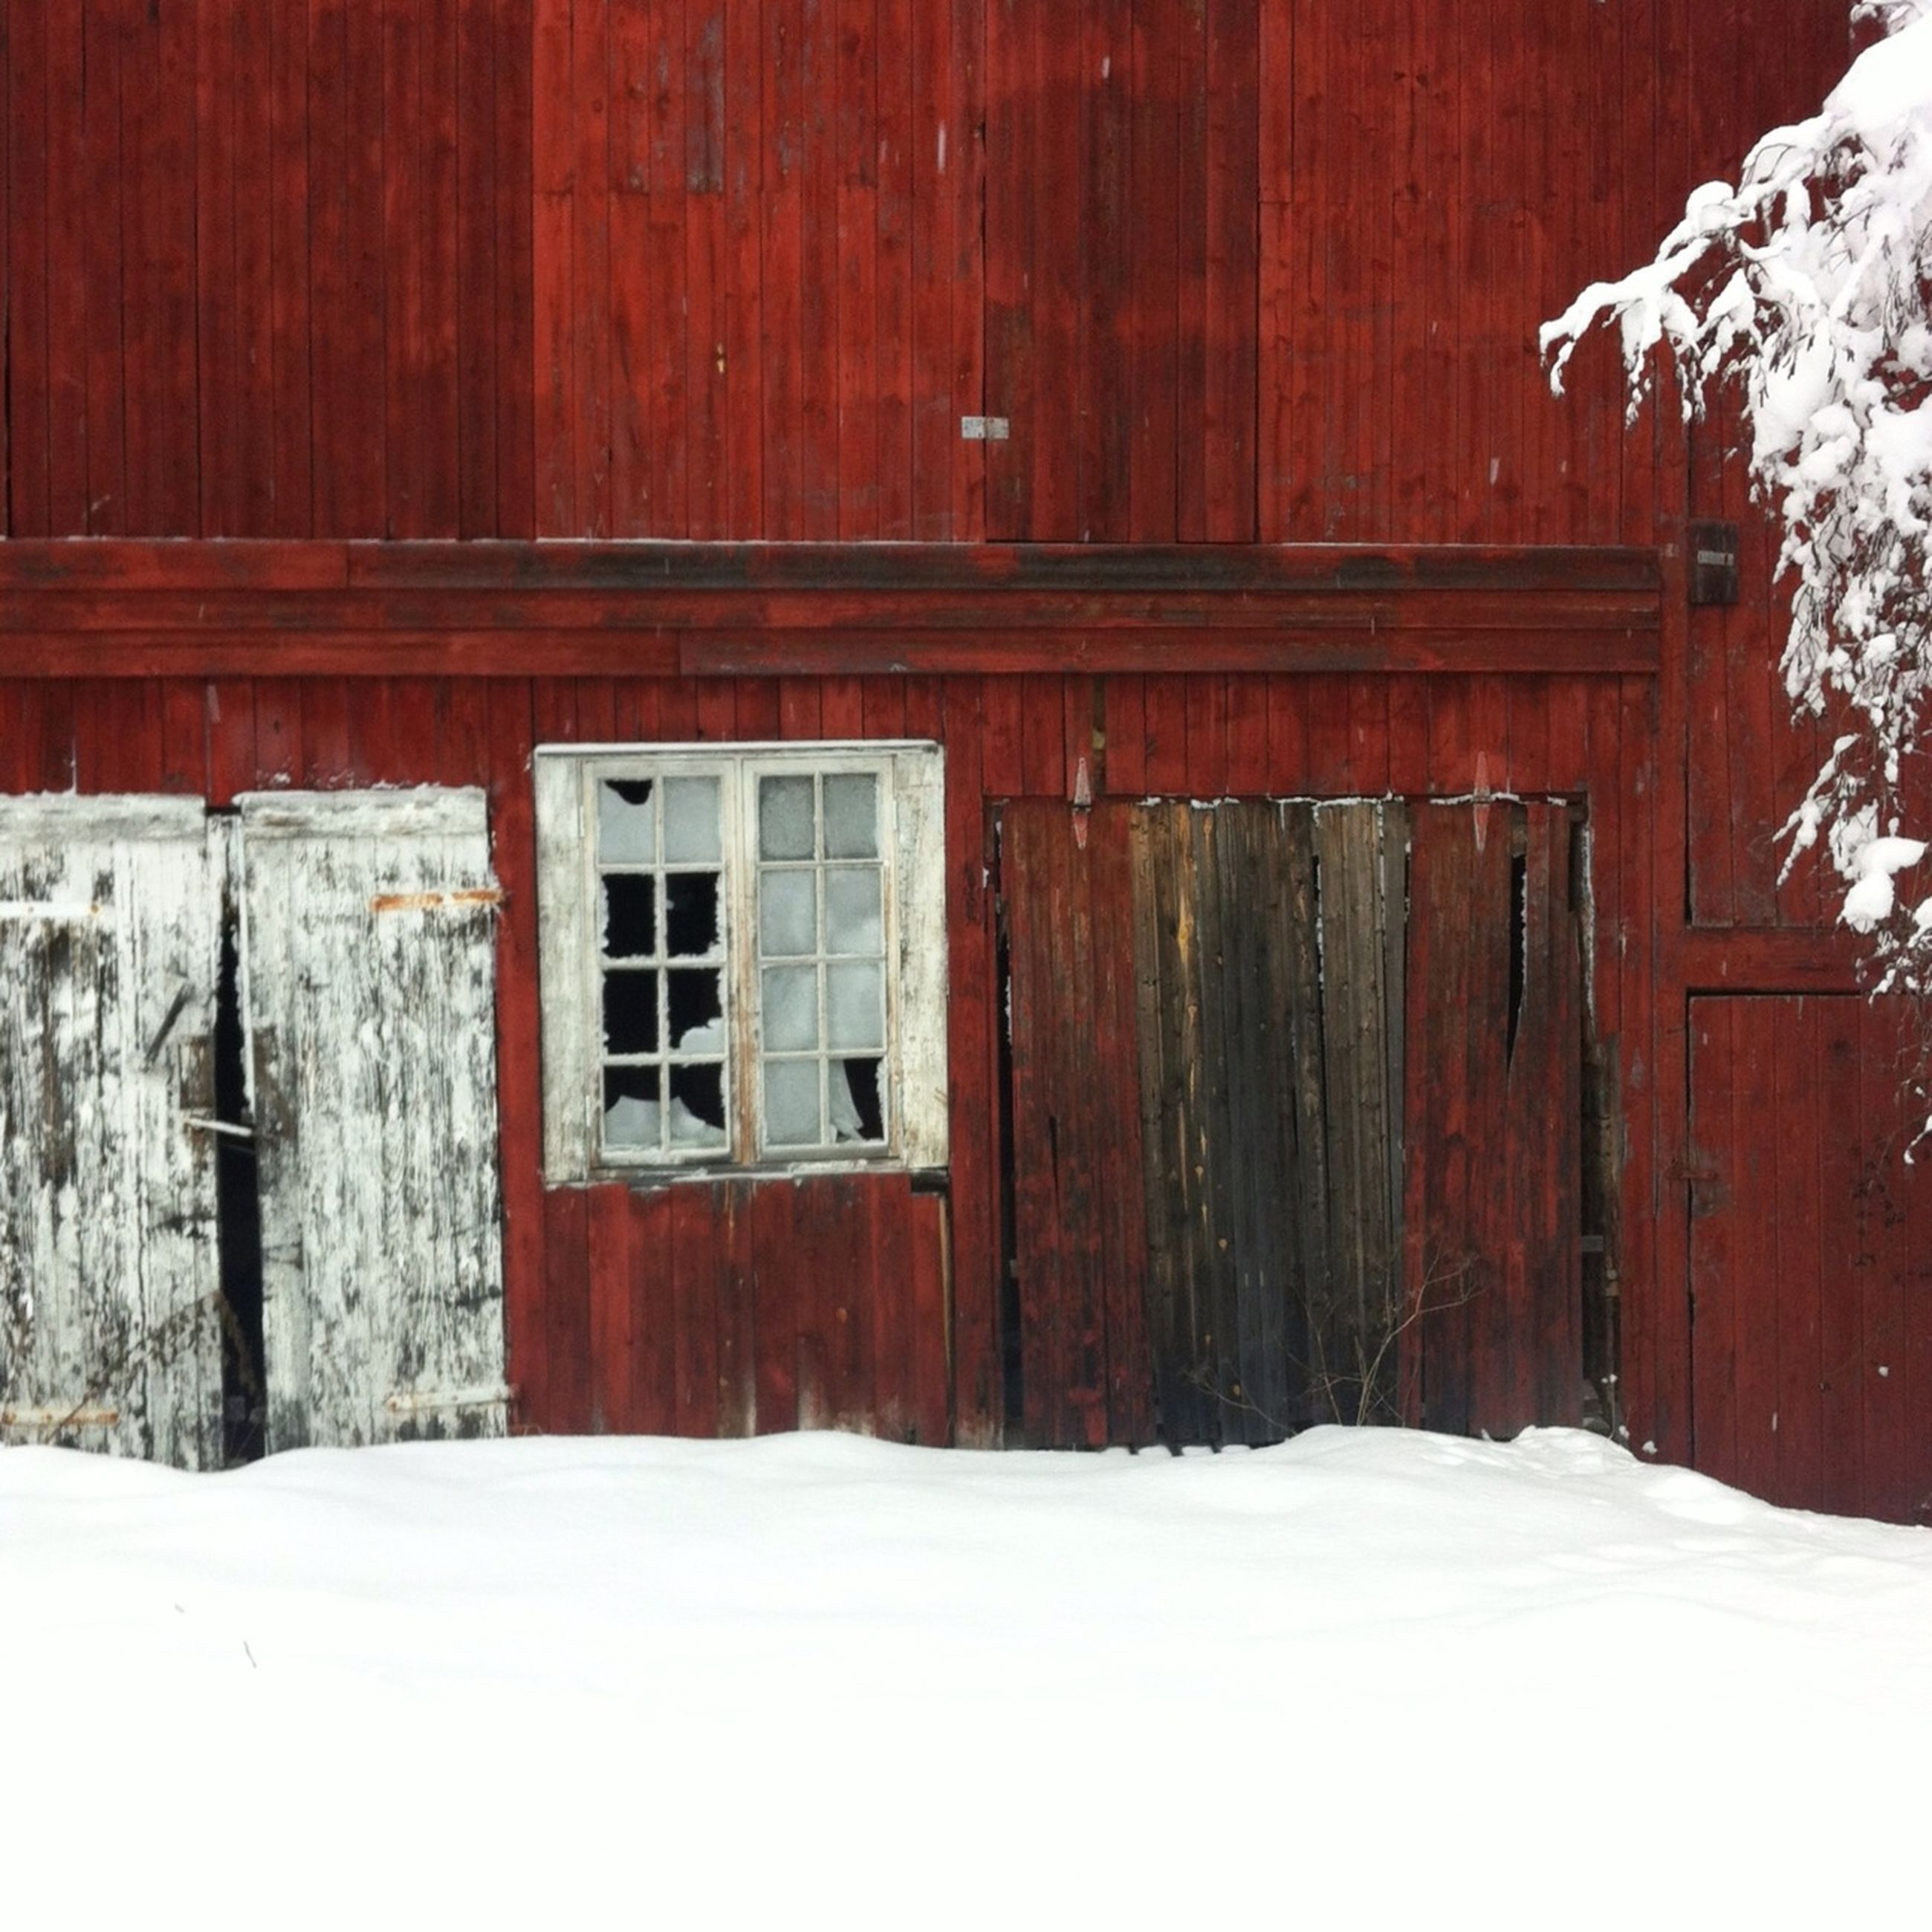 snow, built structure, winter, architecture, house, building exterior, cold temperature, window, wood - material, door, covering, white color, residential structure, season, no people, day, outdoors, wooden, nature, sunlight